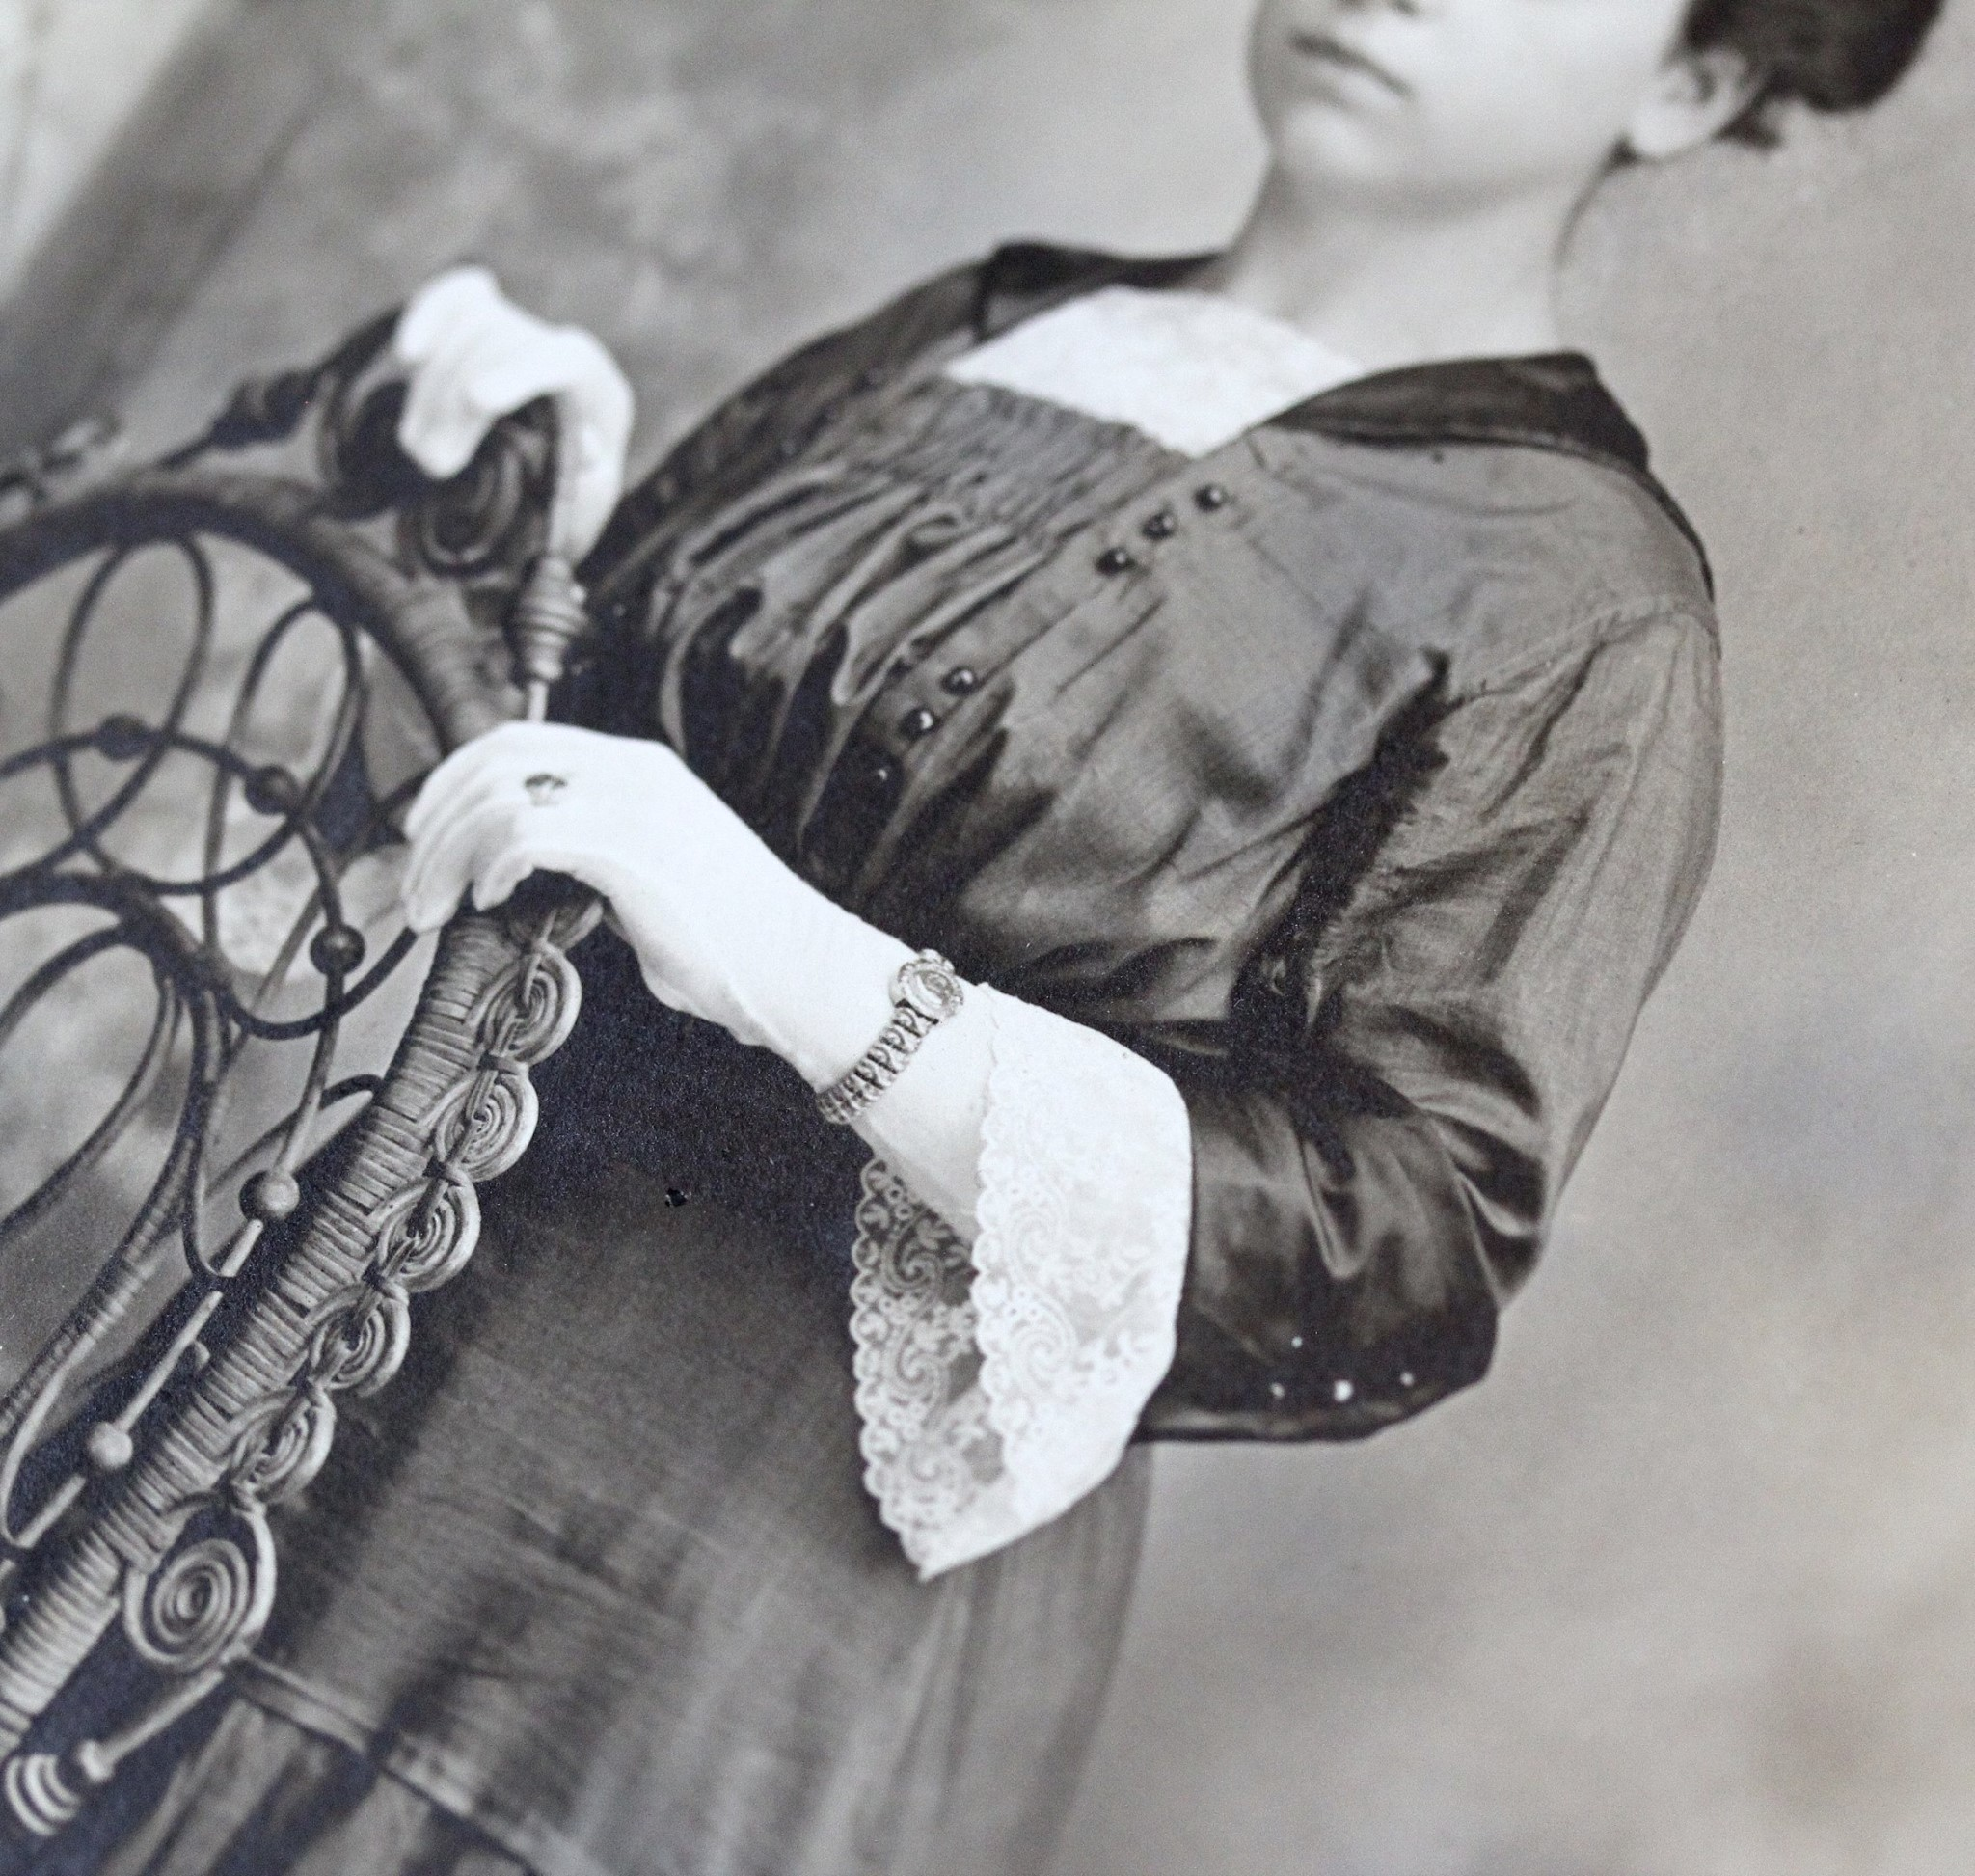 In addition to her expansion bracelet she is seen wearing a filigree ring on her gloved hand.